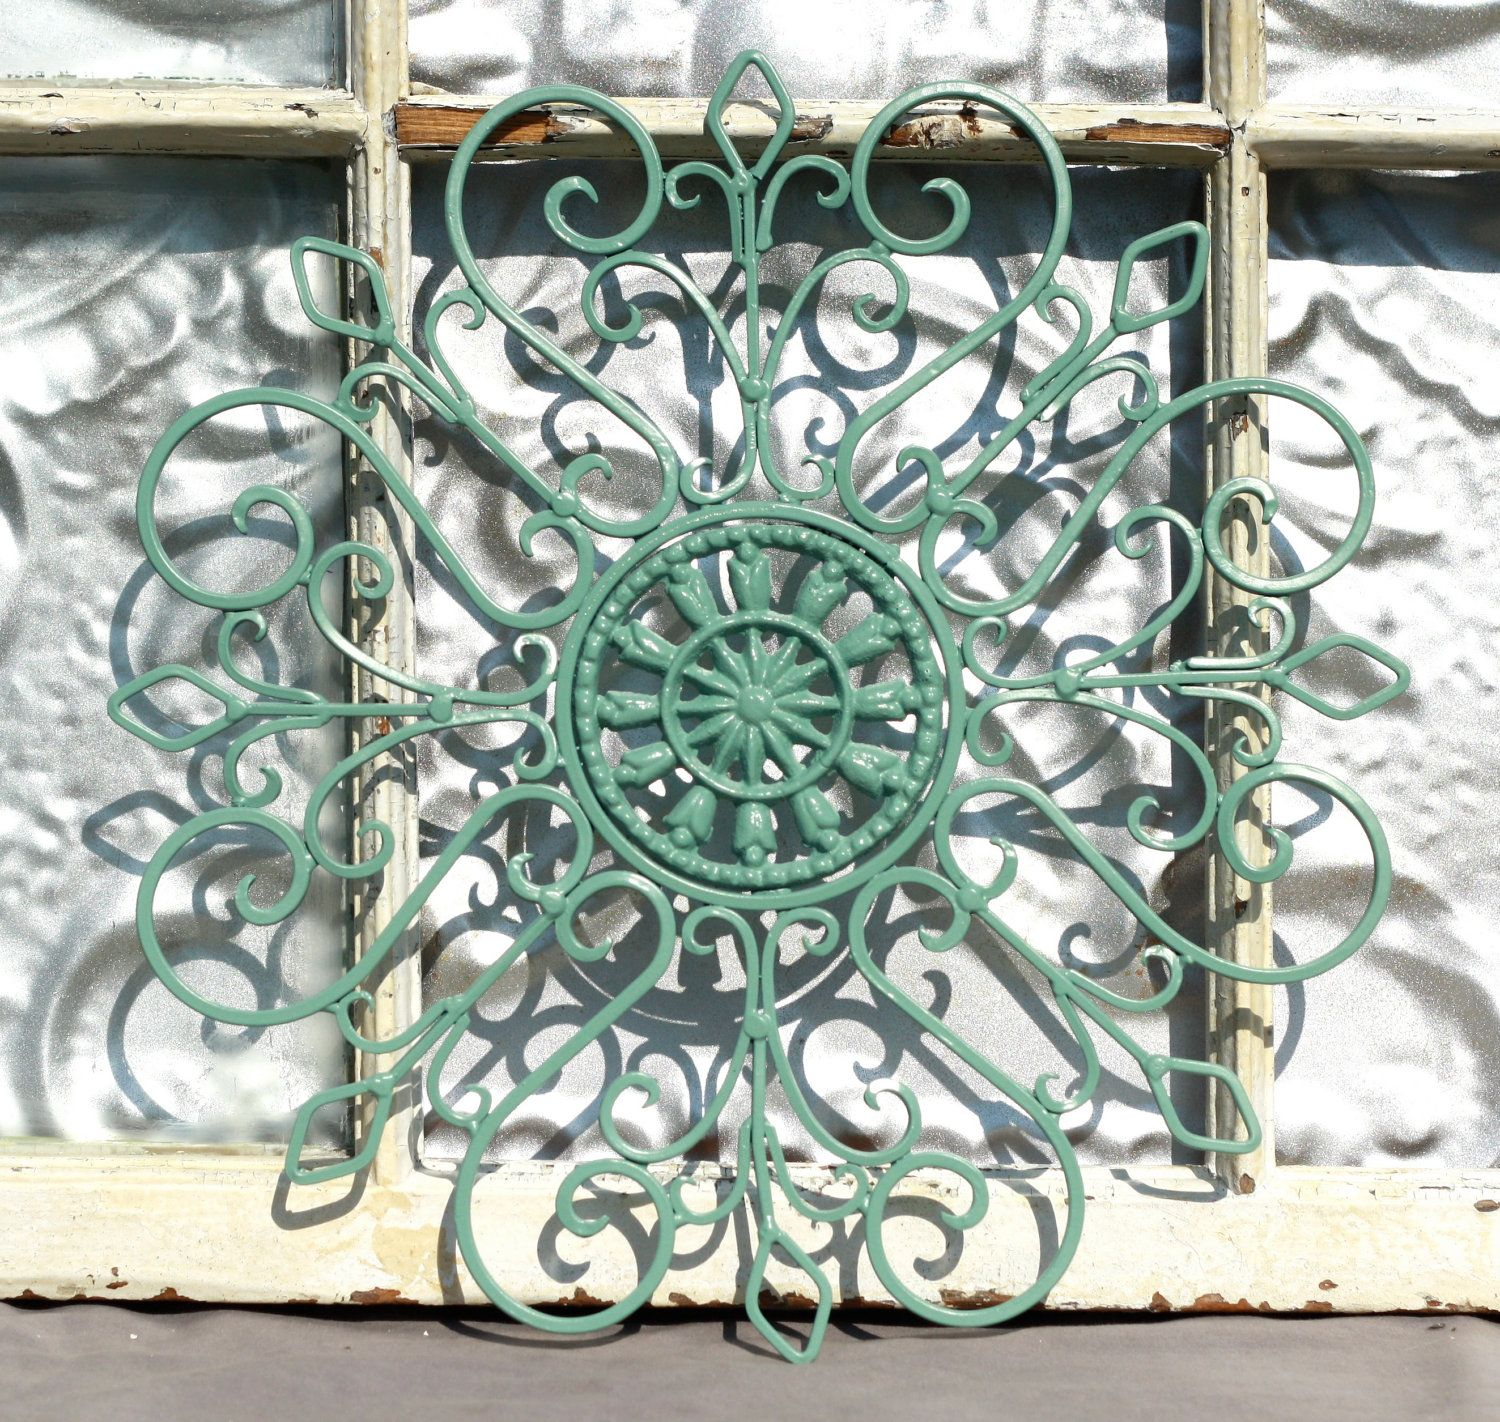 Long Wrought Iron Wall Decor Wrought Iron Wall Decor Metal Wall Hanging Indoor Outdoor Metal